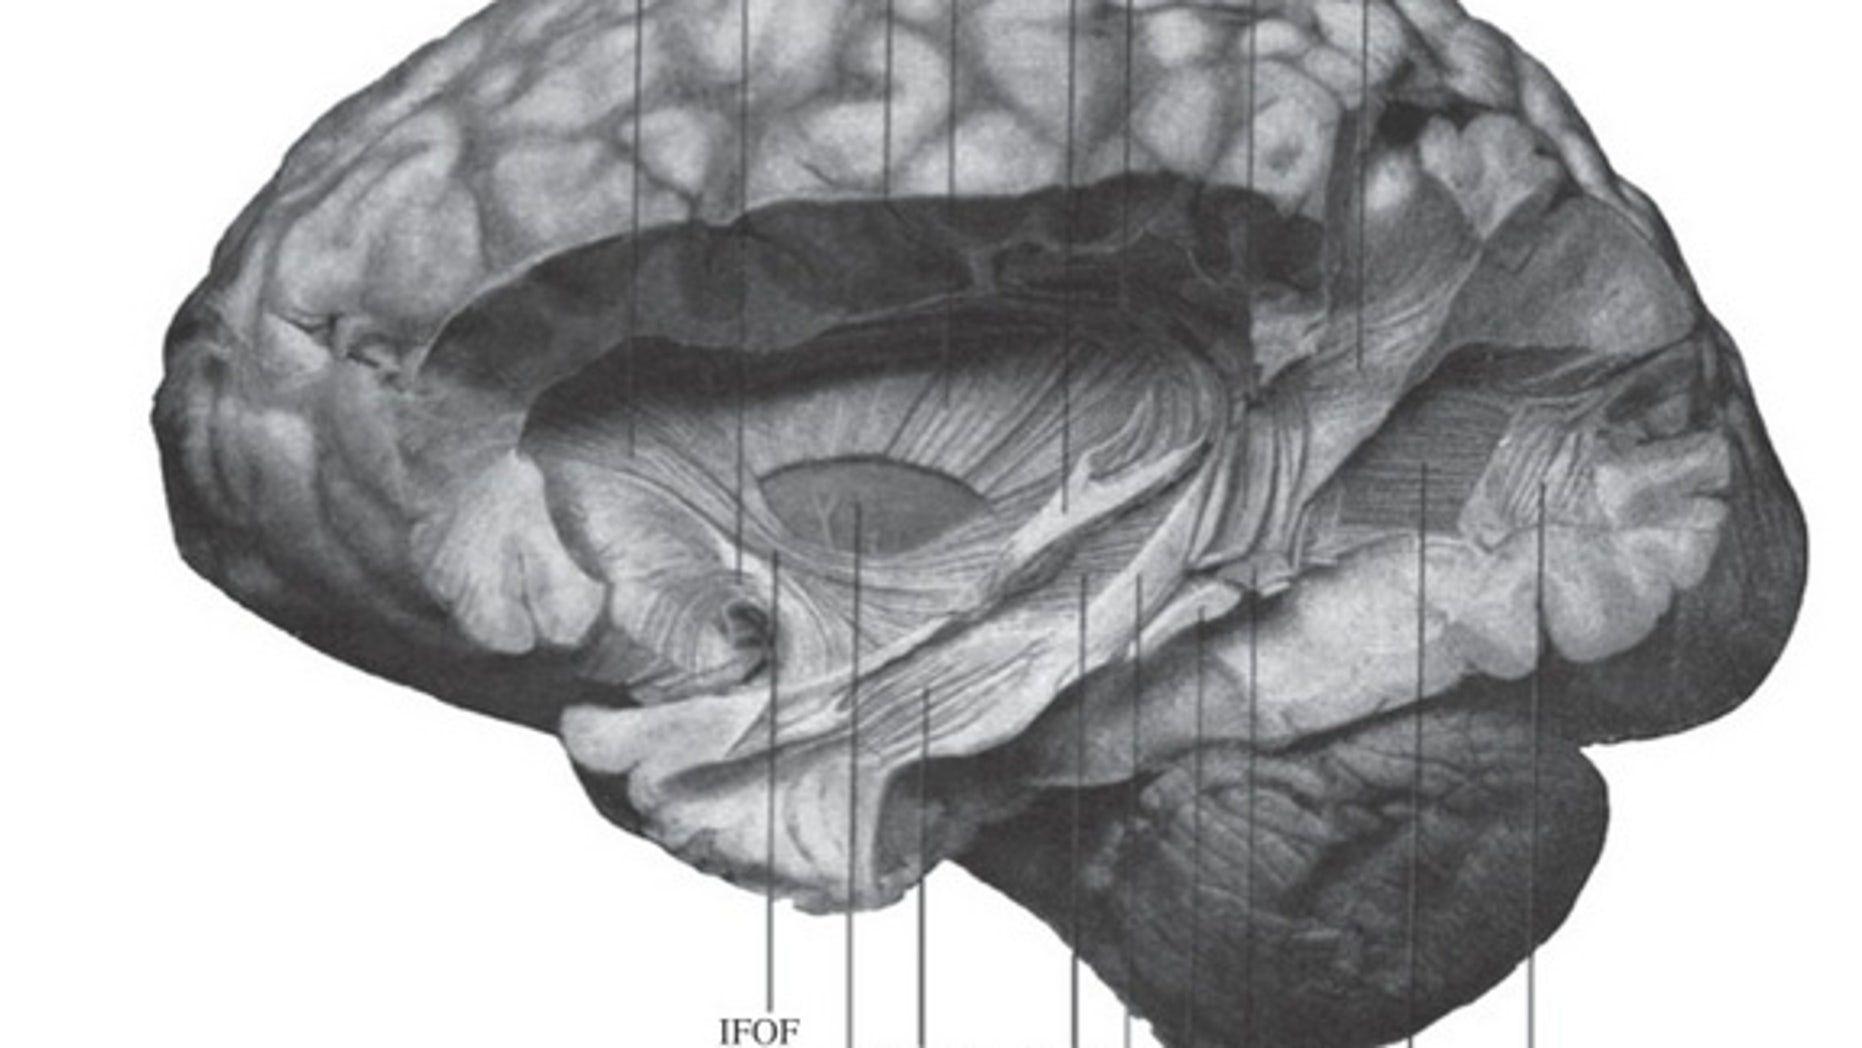 A drawing of a postmortem brain that includes the vertical occipital fasciculus (bottom left) published by neuroscientist E.J. Curran in 1909.